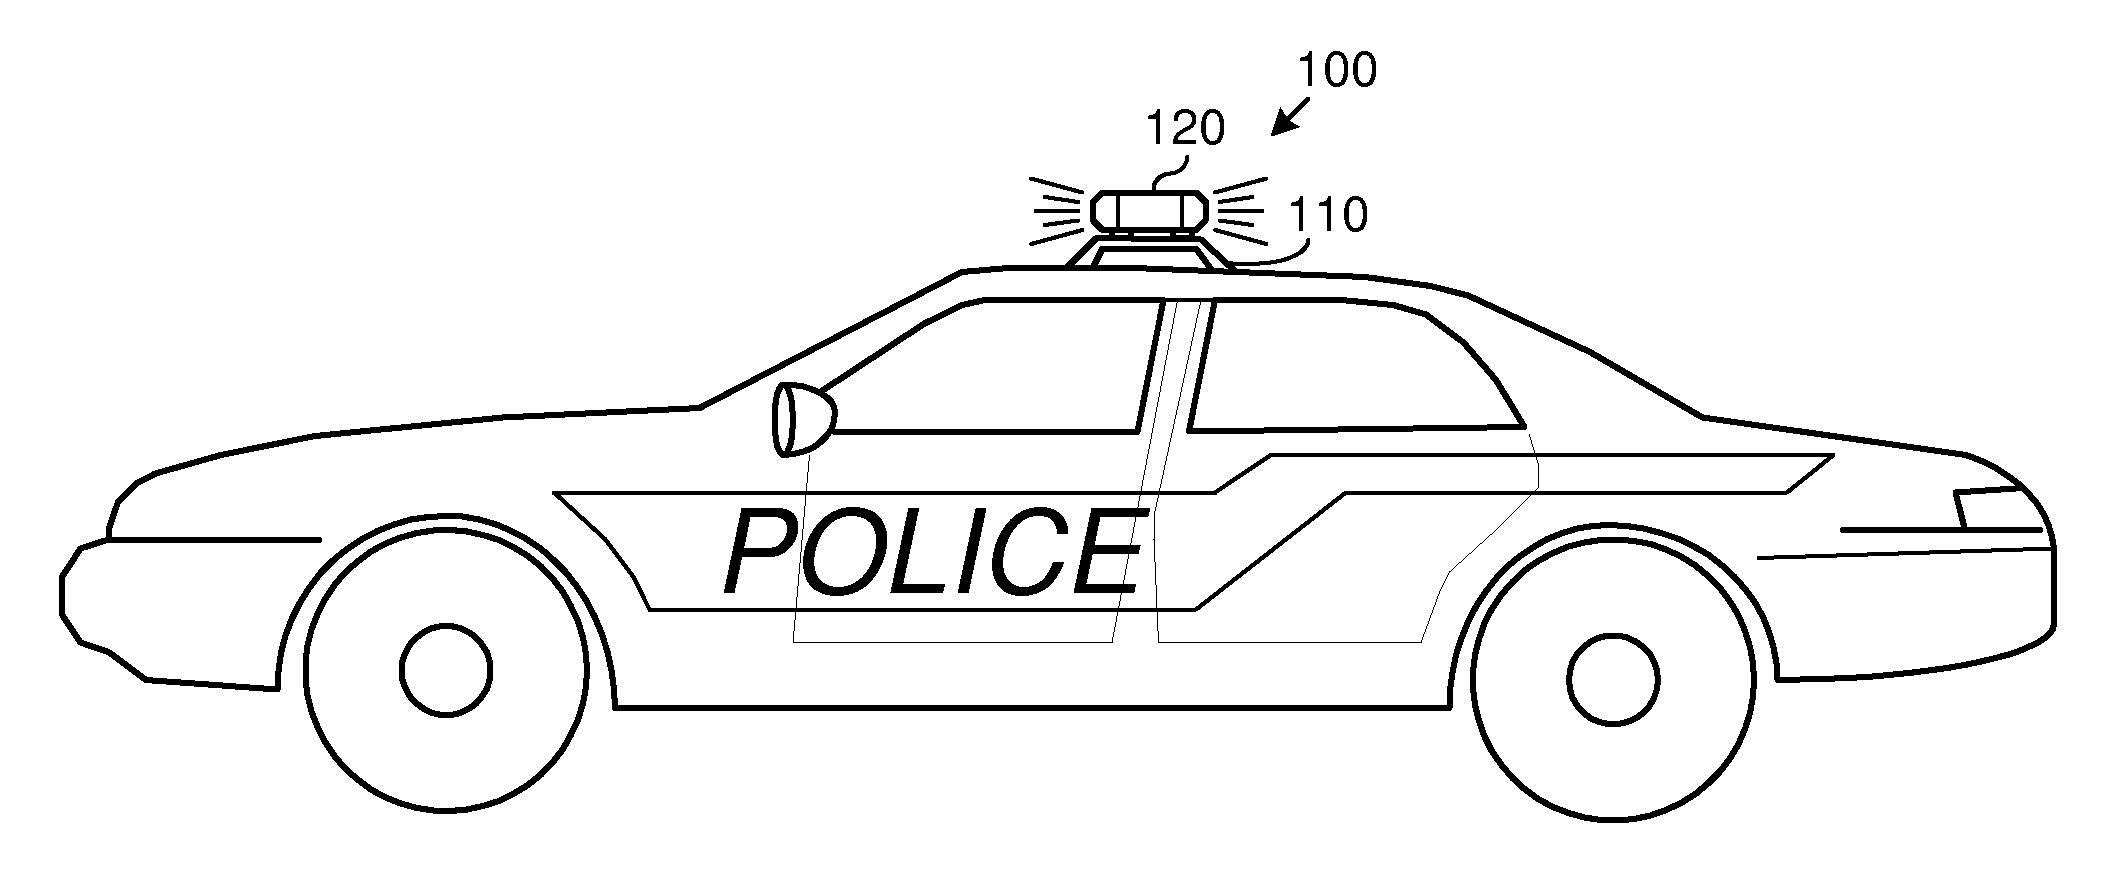 emergency vehicles coloring pages - photo #9